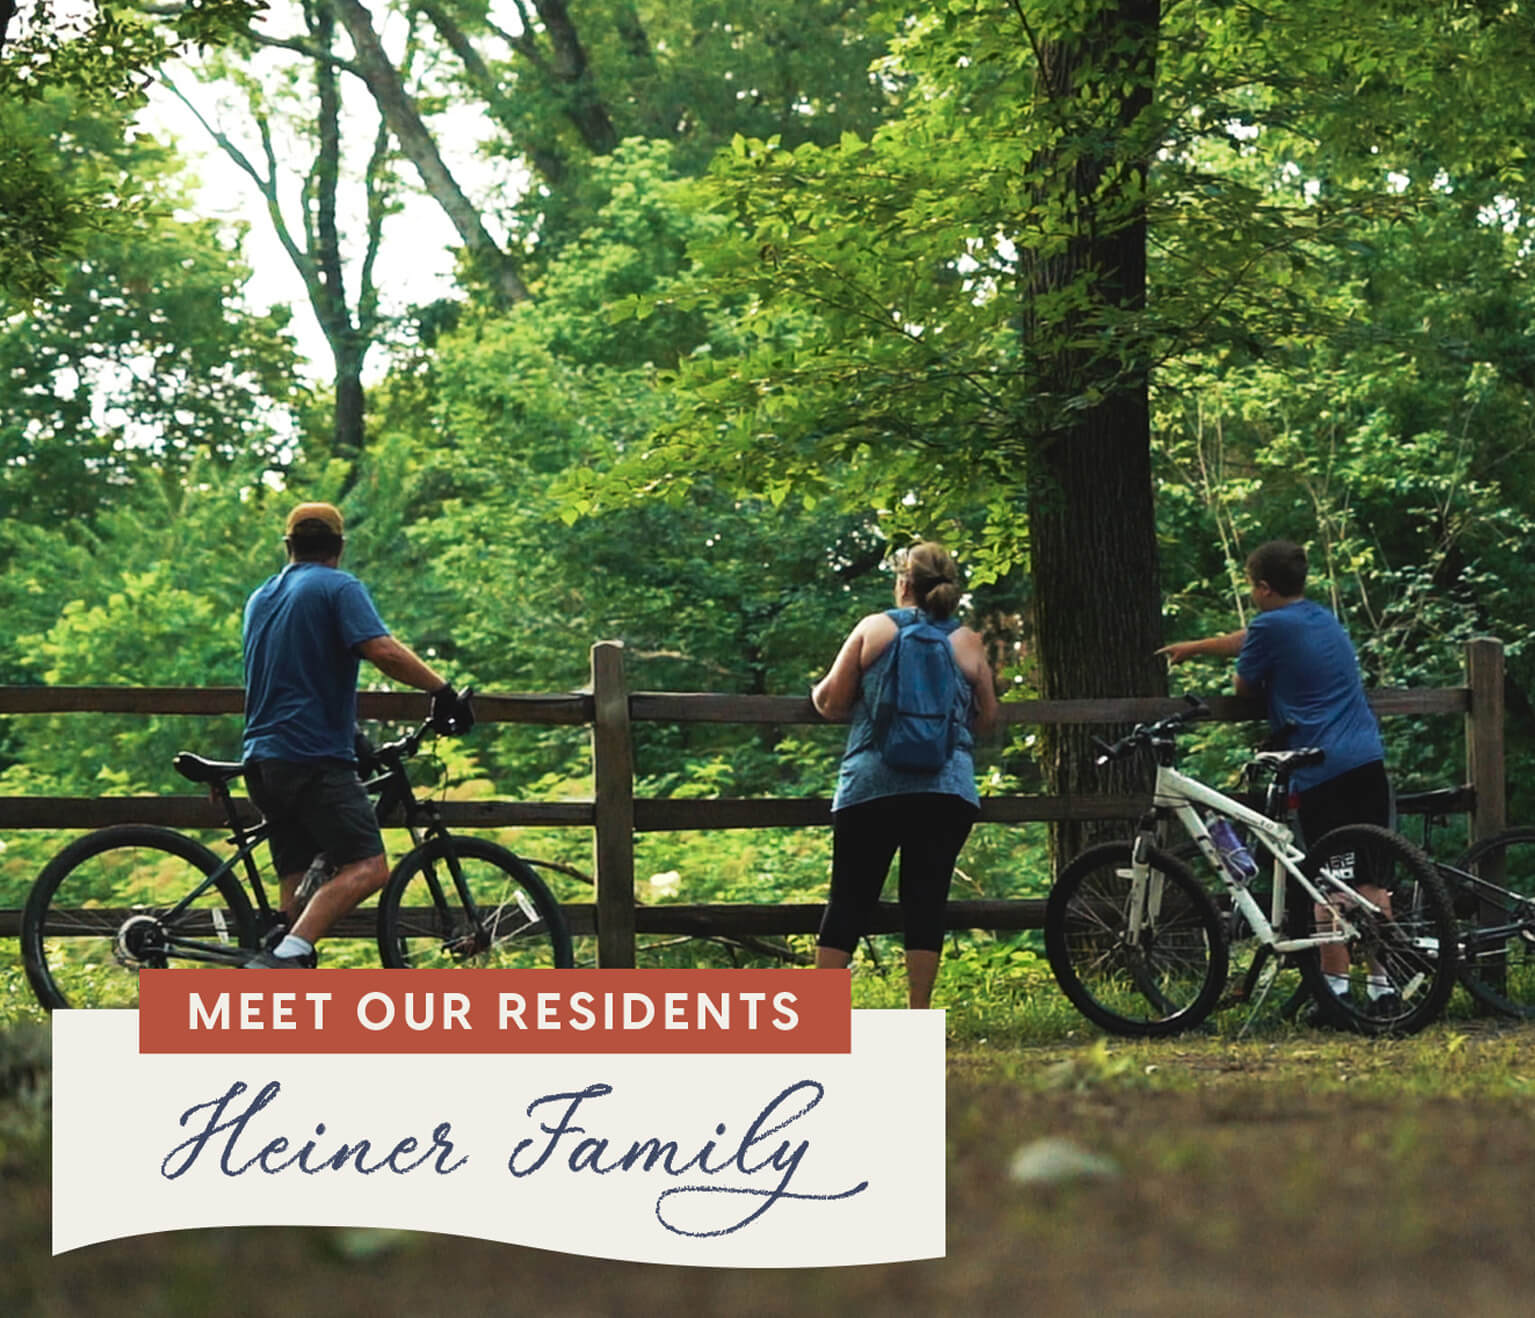 Meet our Residents - The Heiner Family